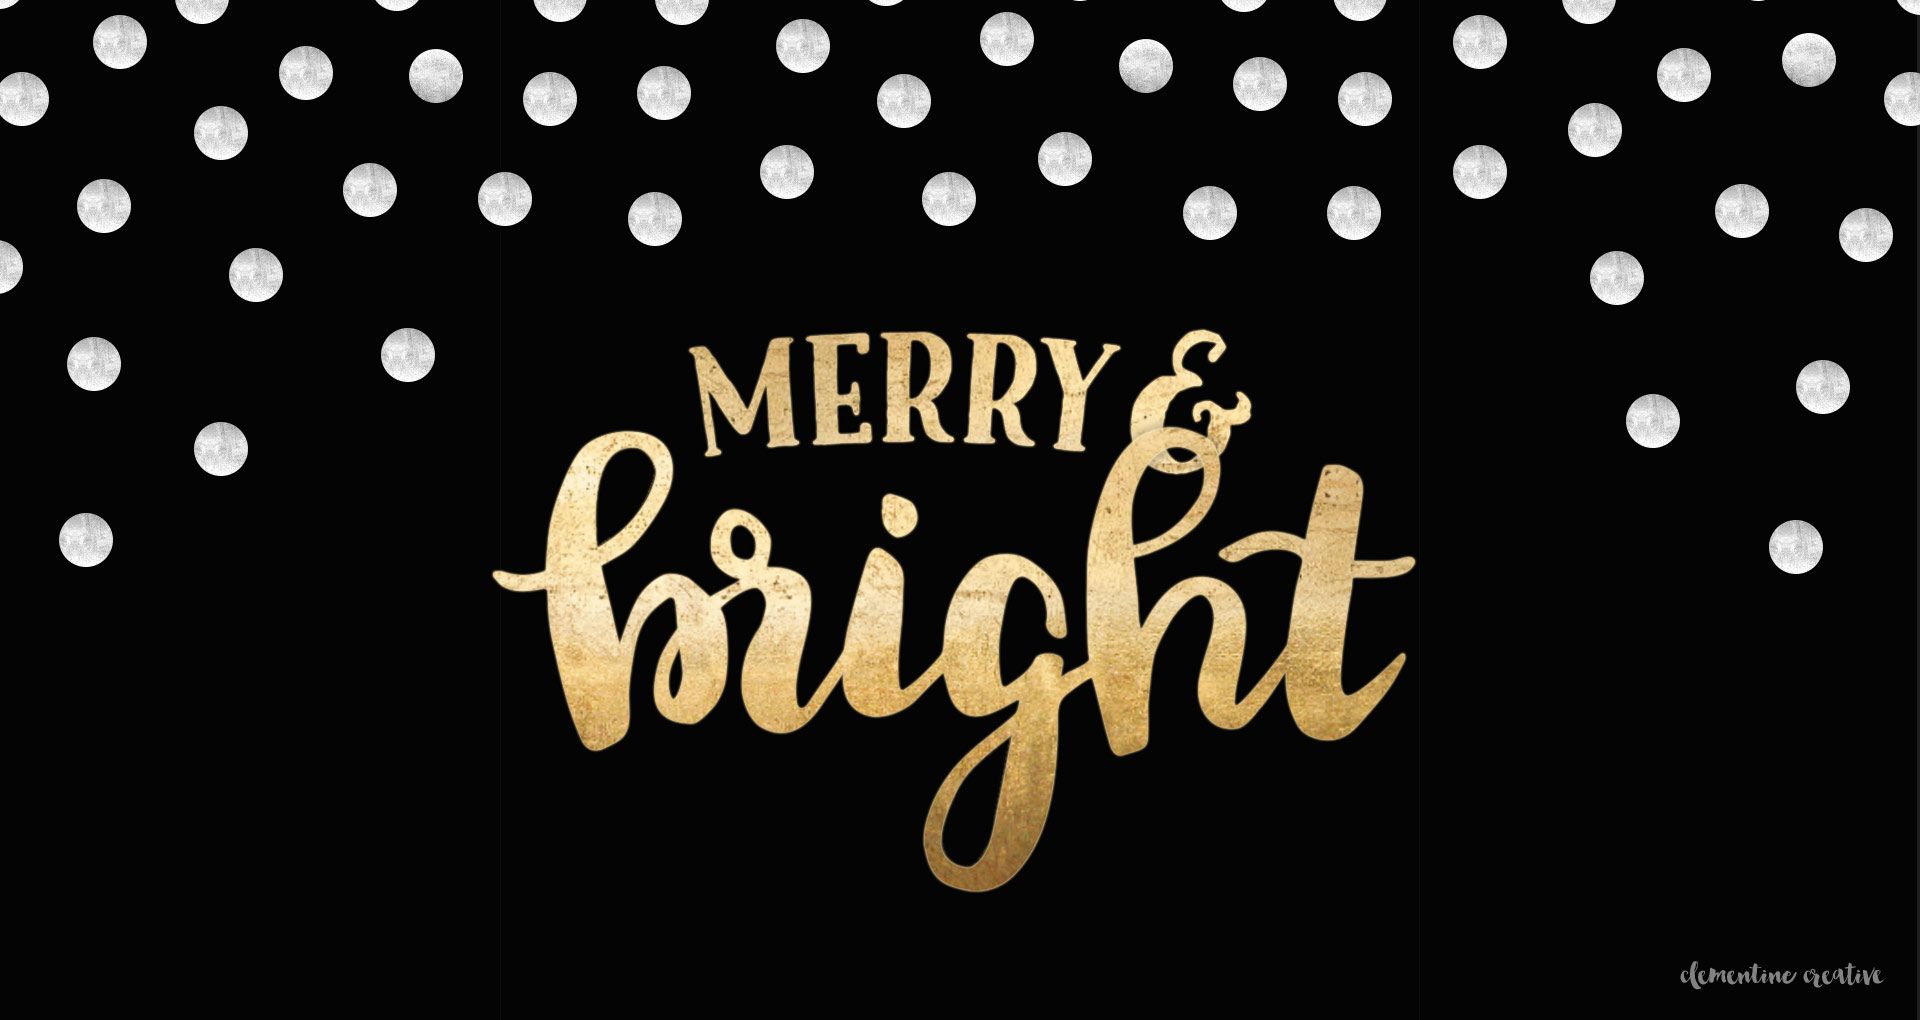 free festive wallpaper: merry and bright - clementine creative